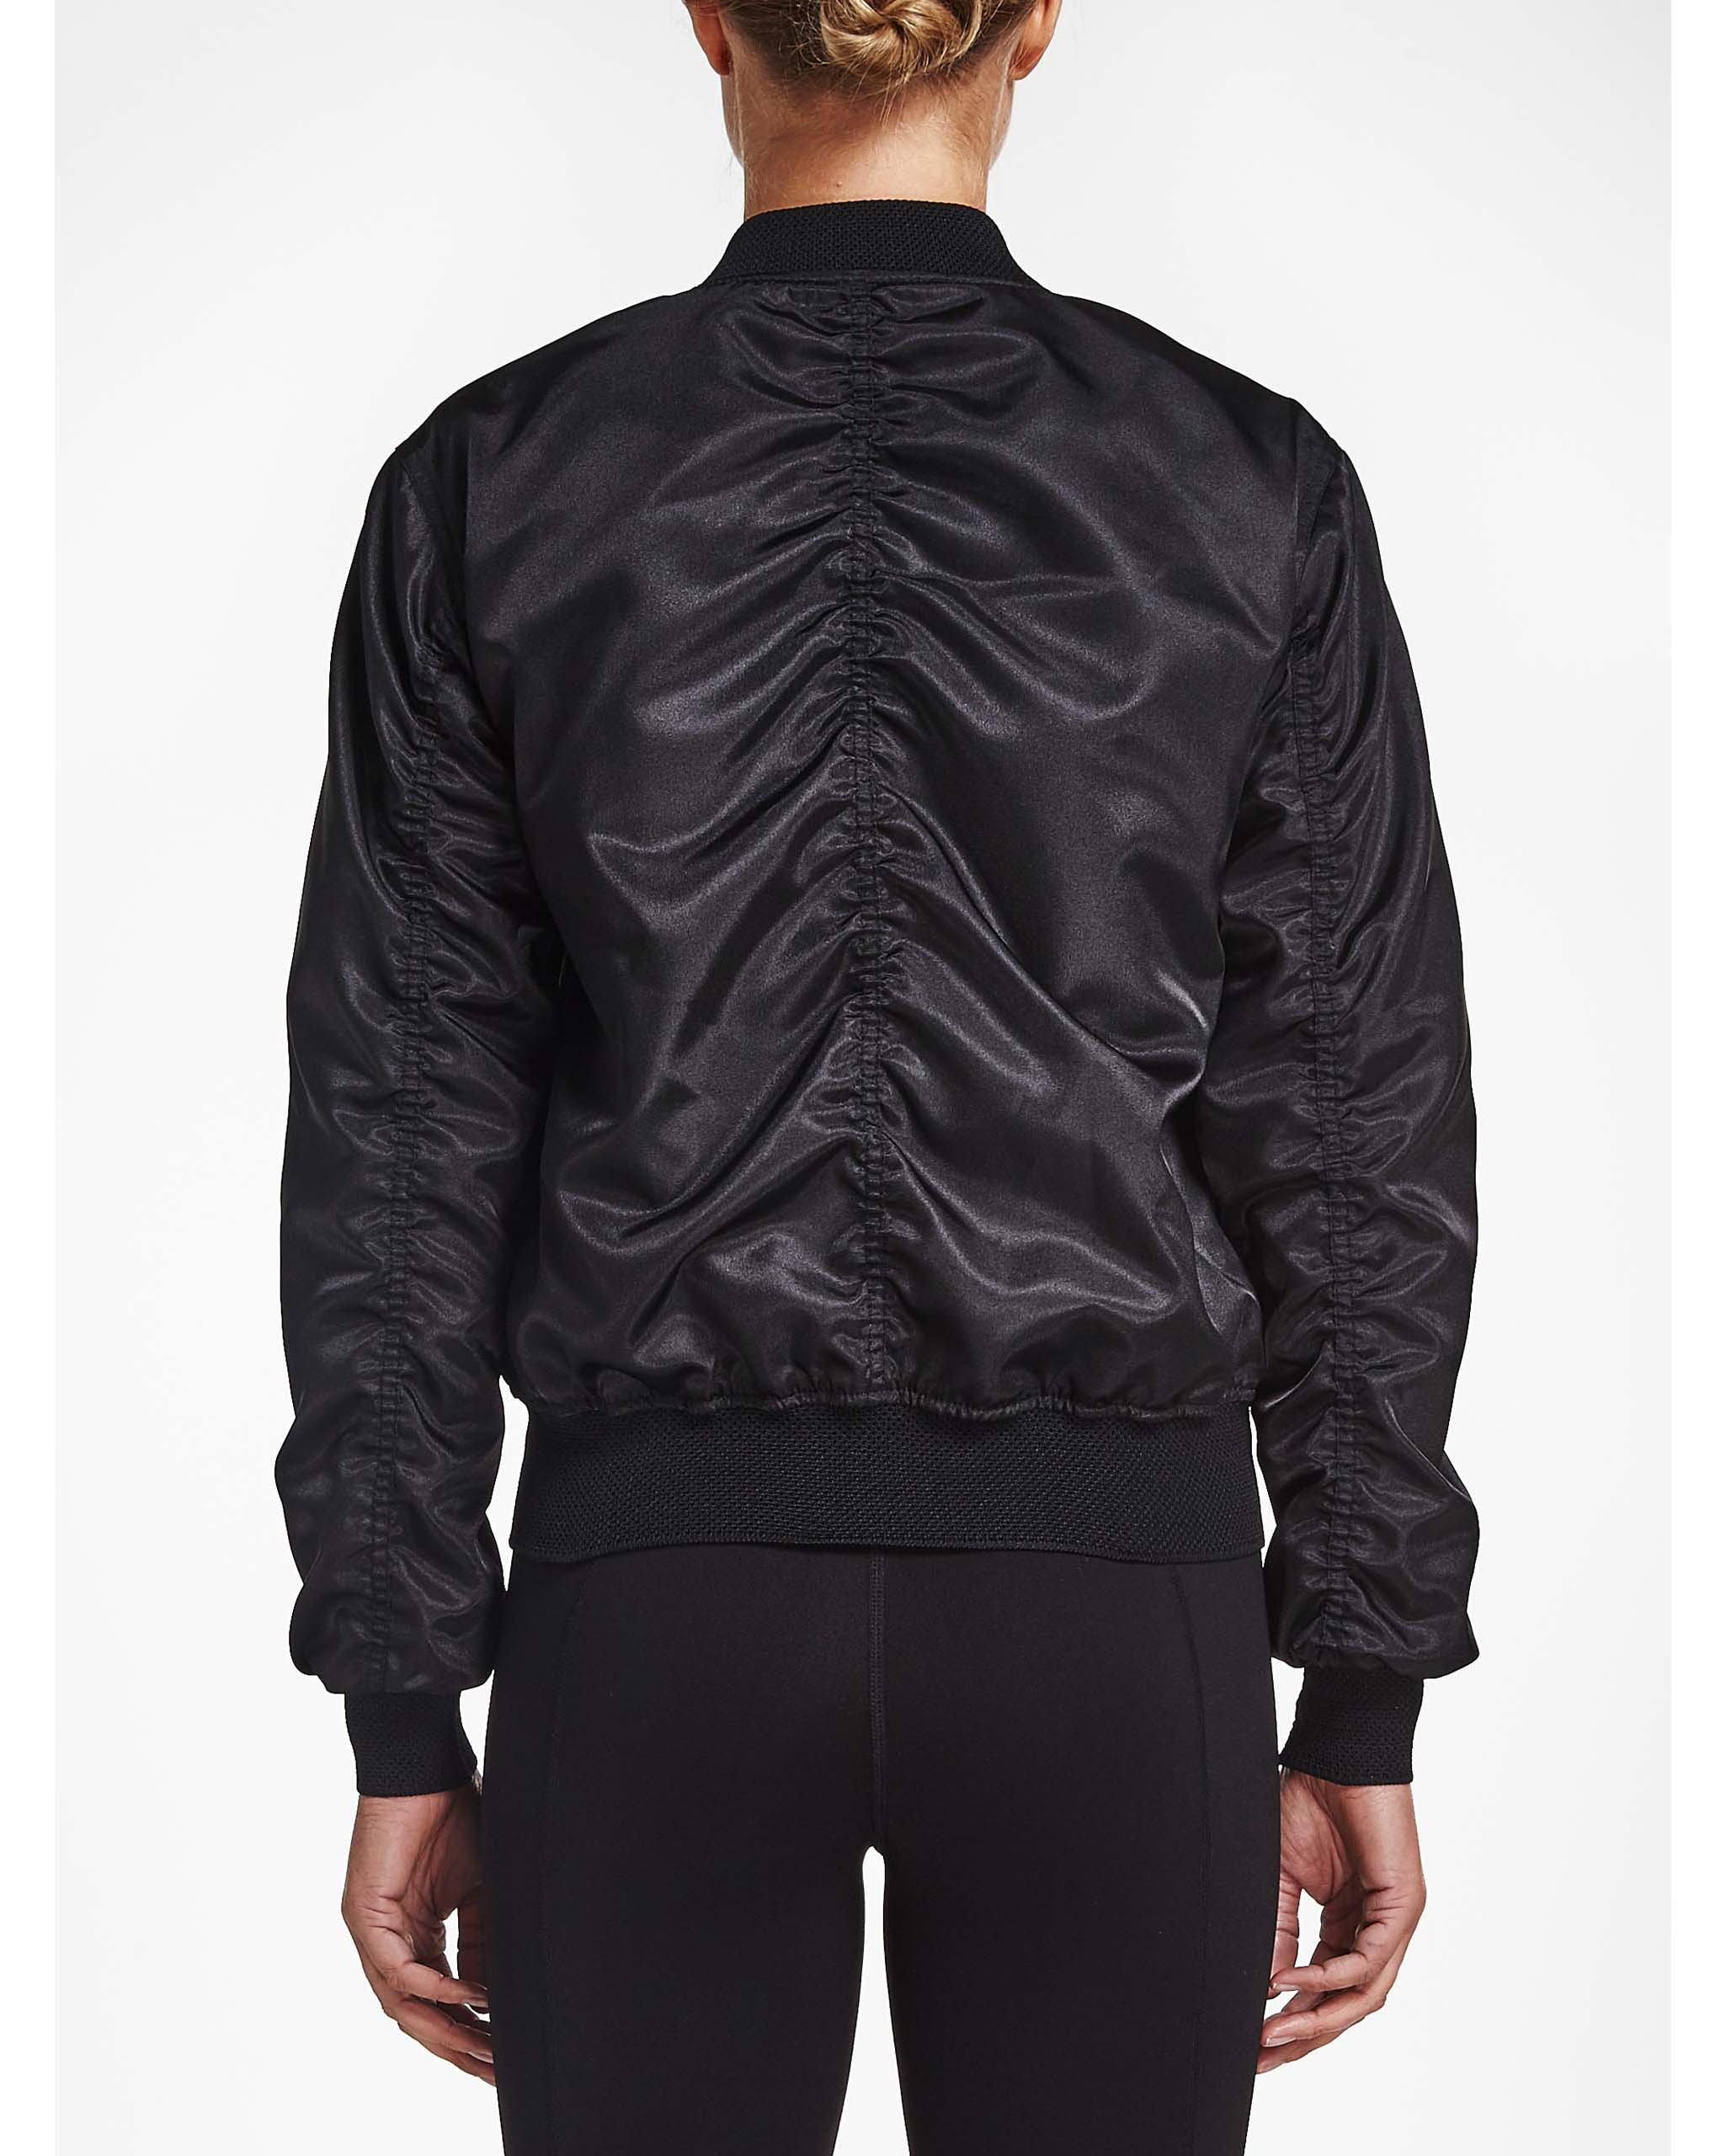 RöHnisch Blink Bomber Jacket - Black